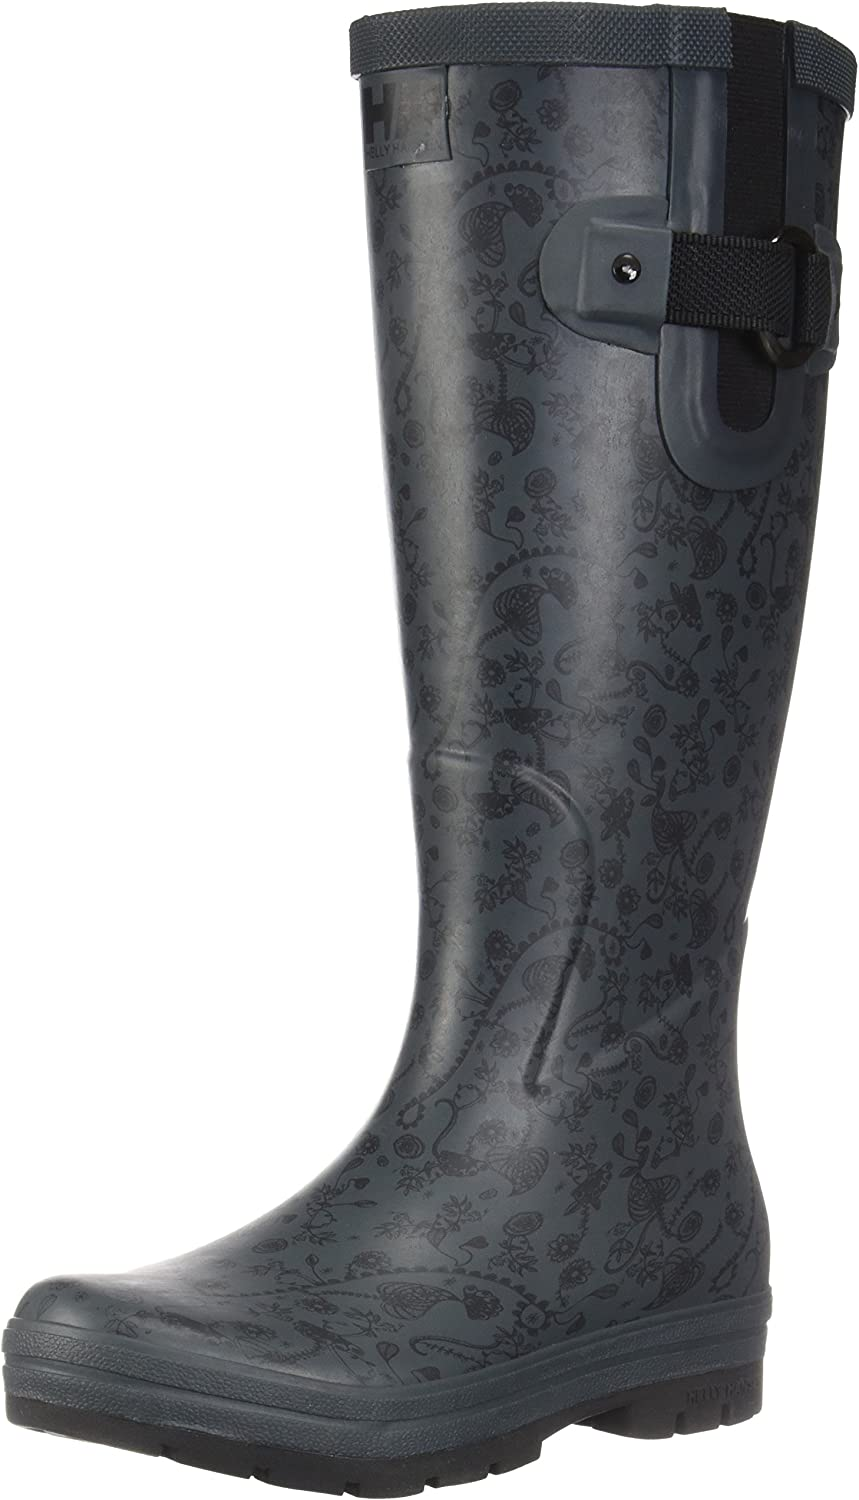 Helly Hansen Womens Veierland 2 Graphic Rain Boots